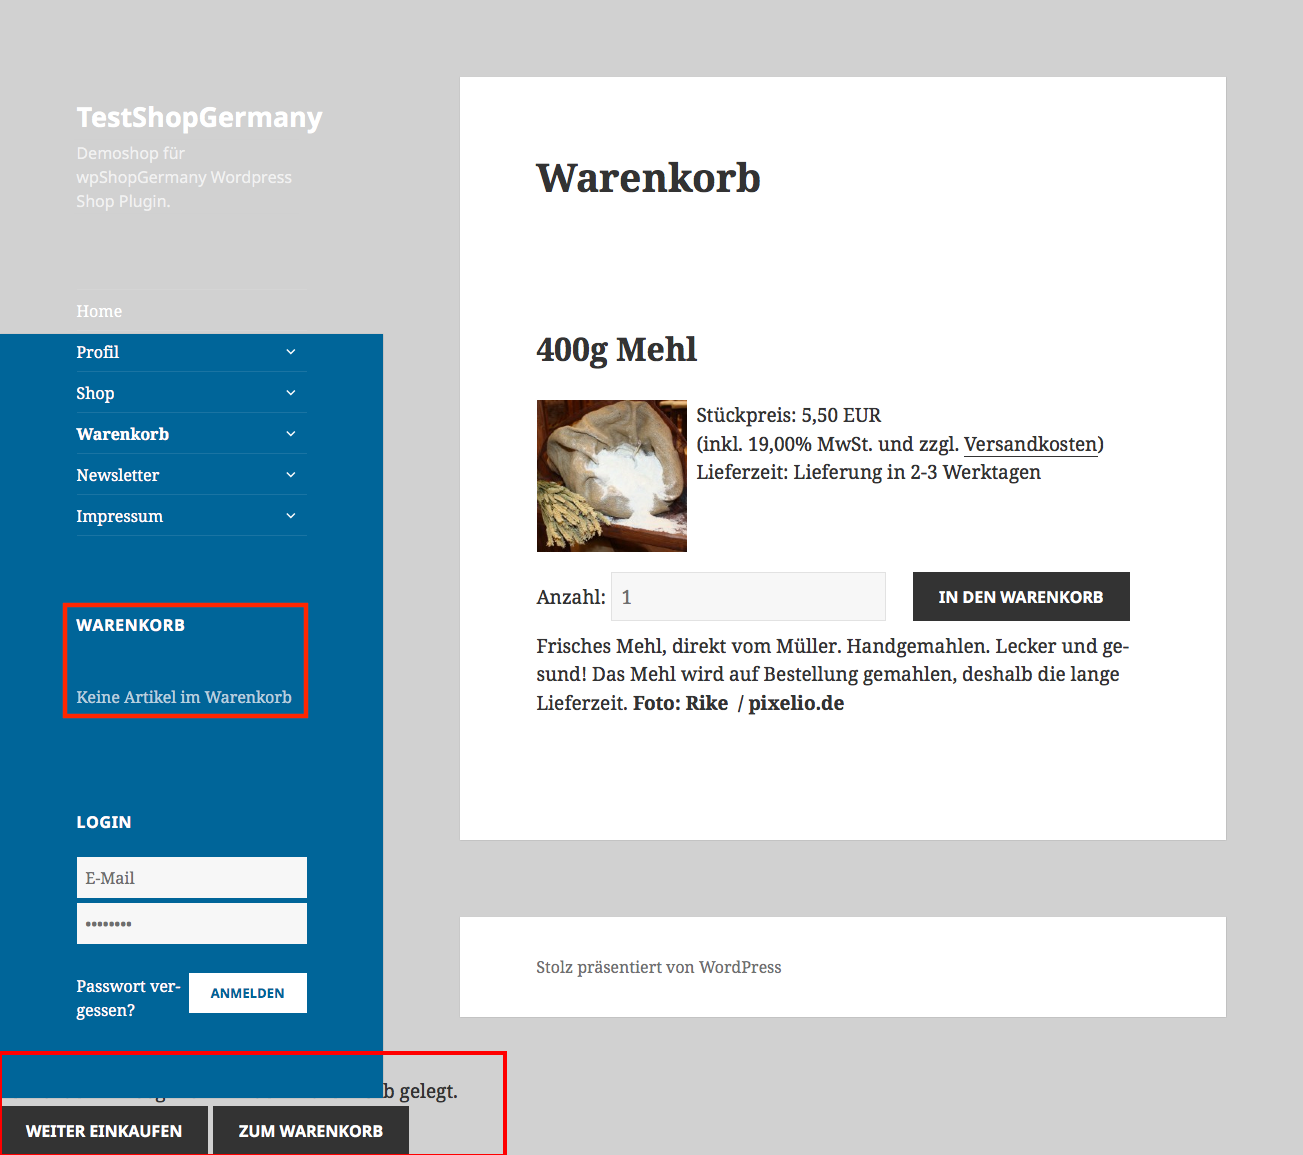 Warenkorb - TestShopGermany 2015-12-02 10-35-59.png